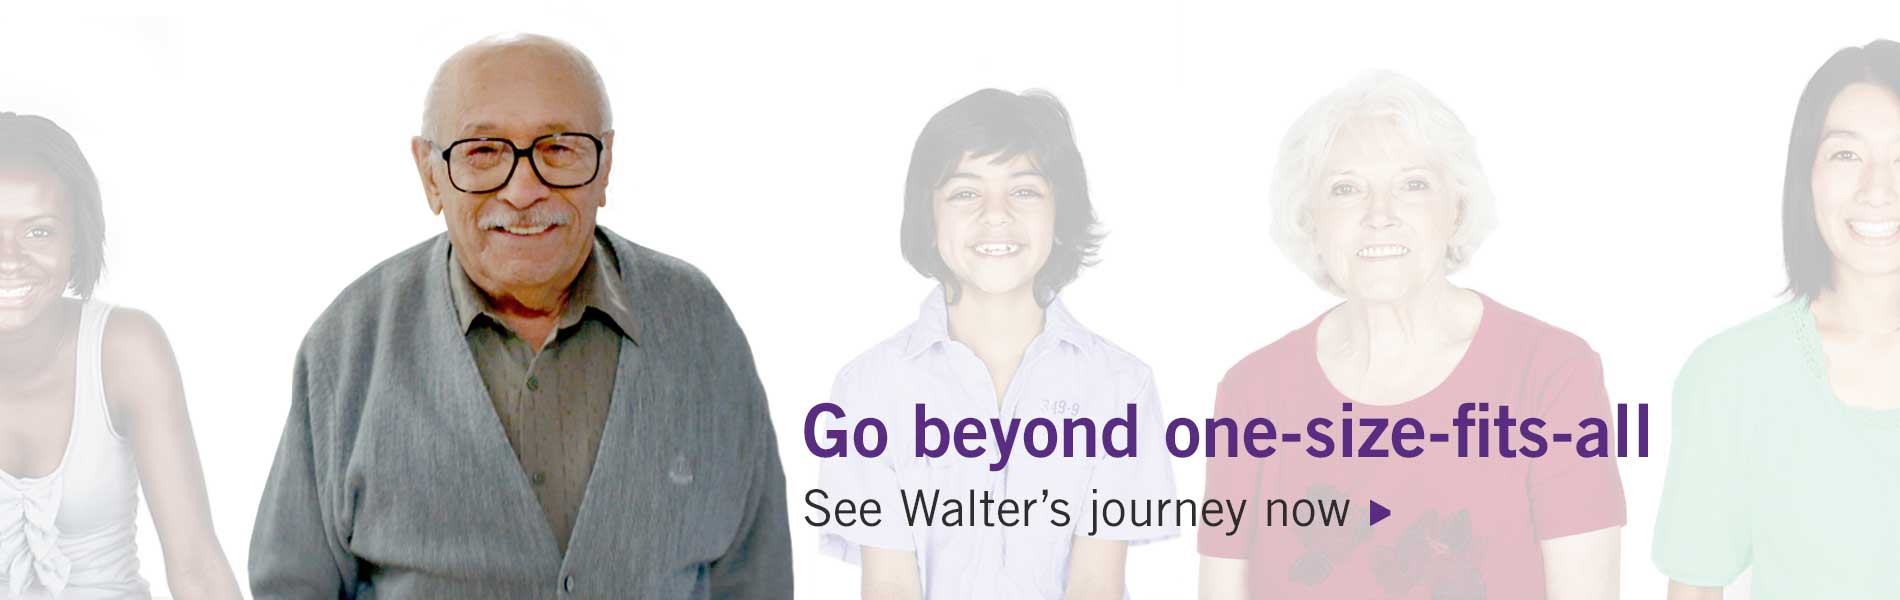 See Walter's journey now